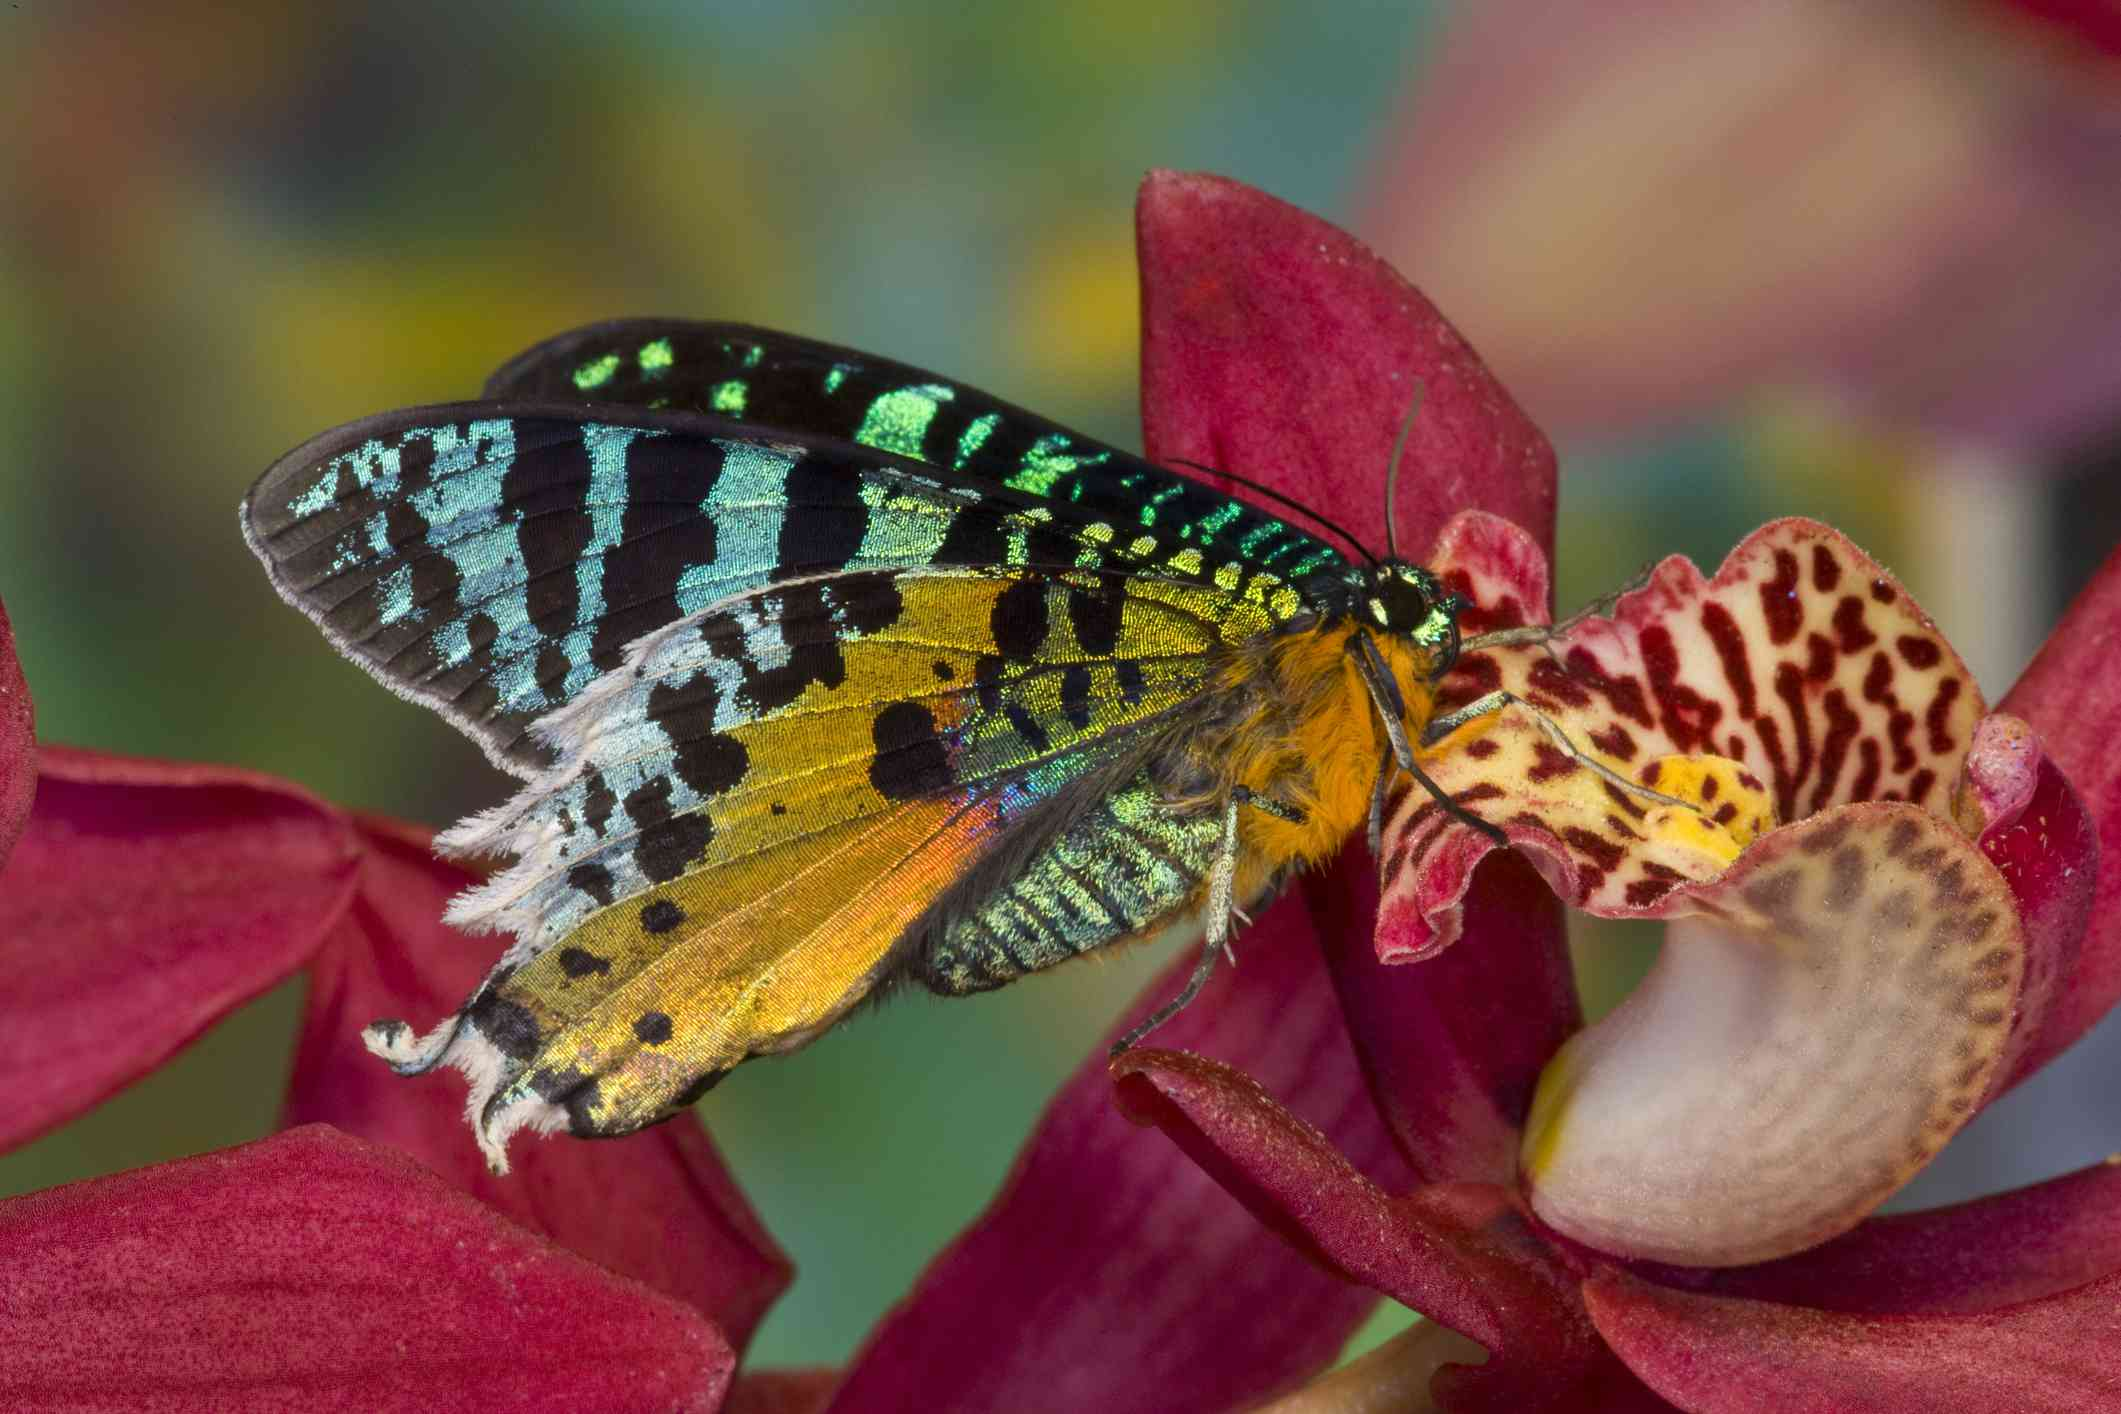 A colorful moth searches for nectar in a pink flower